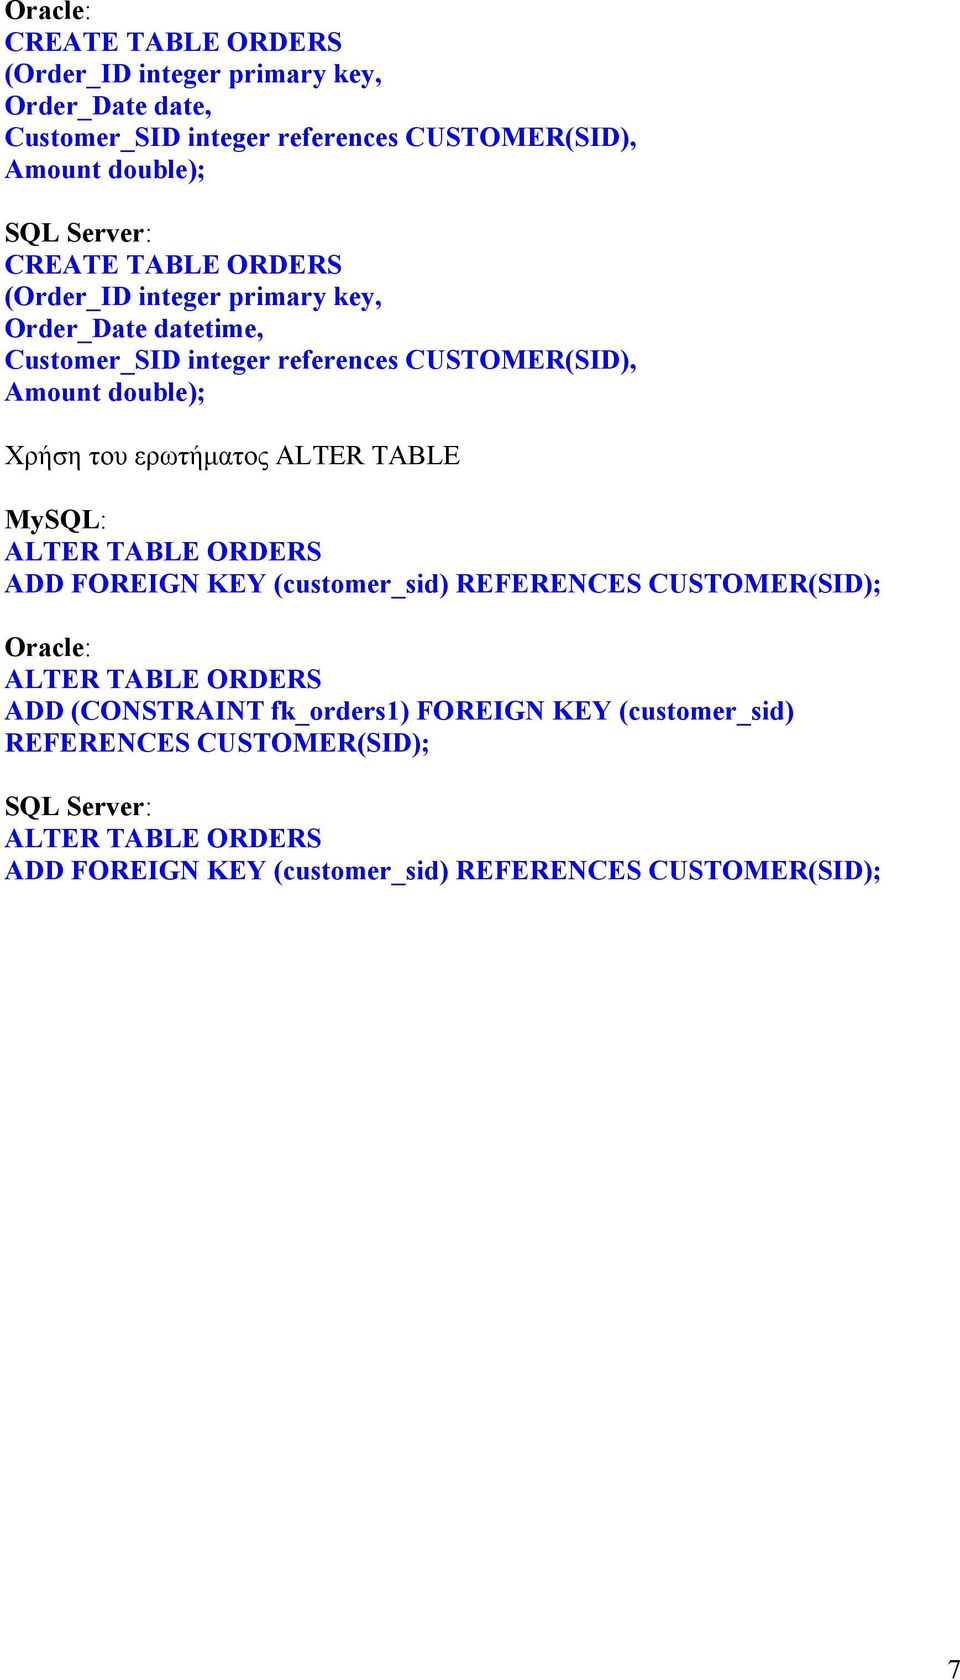 Pdf - Alter table add constraint primary key ...